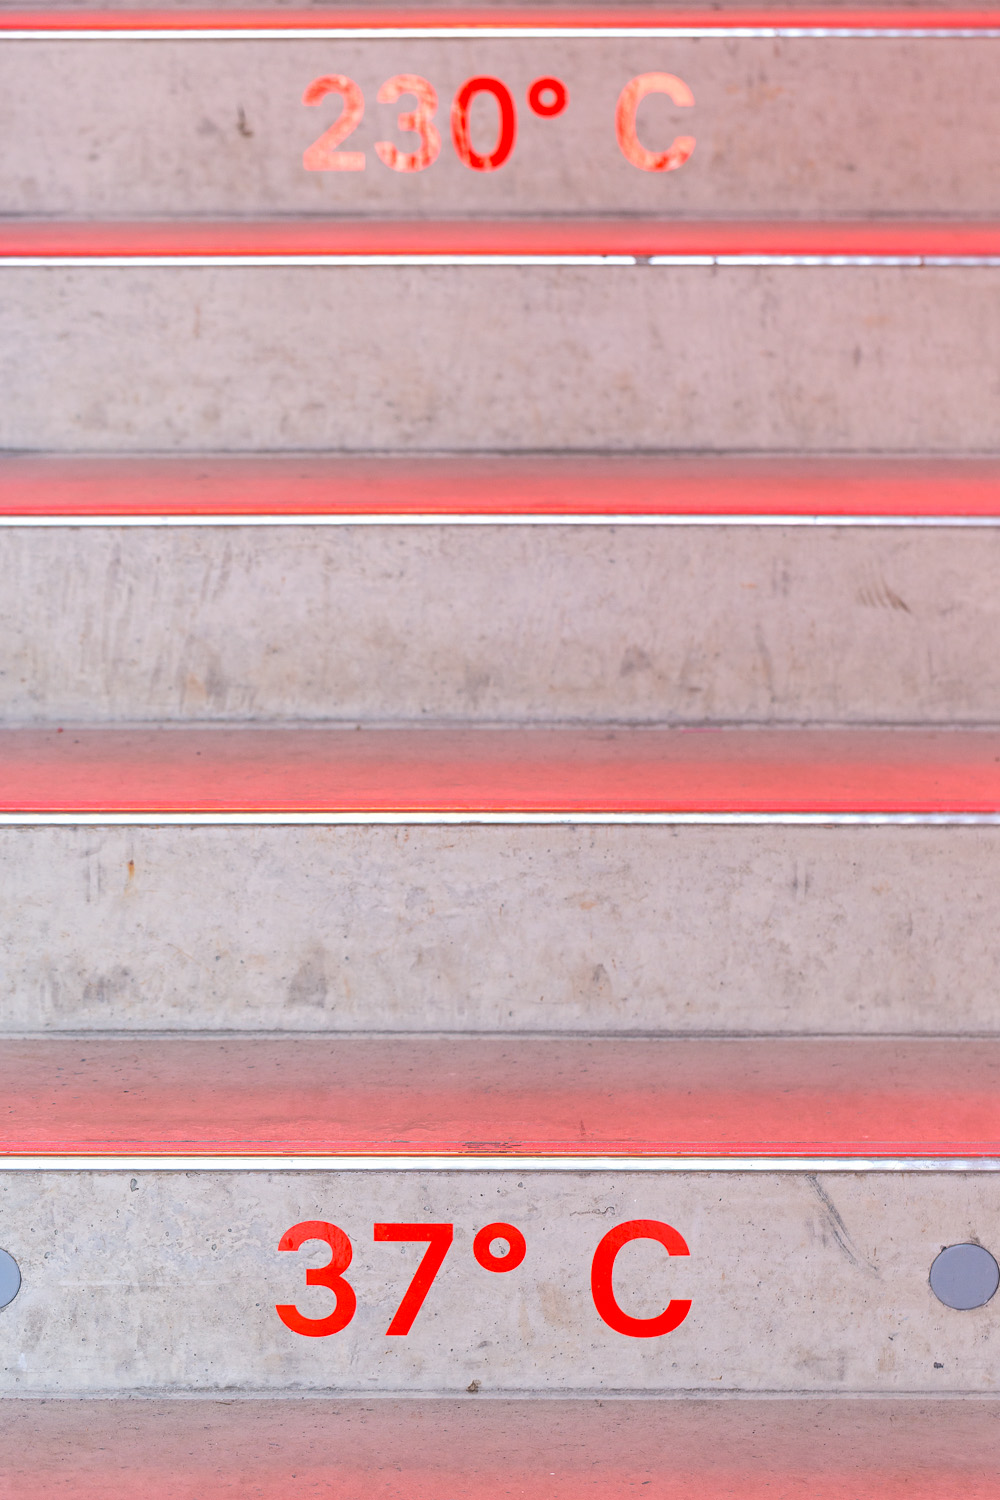 Red stairs with text